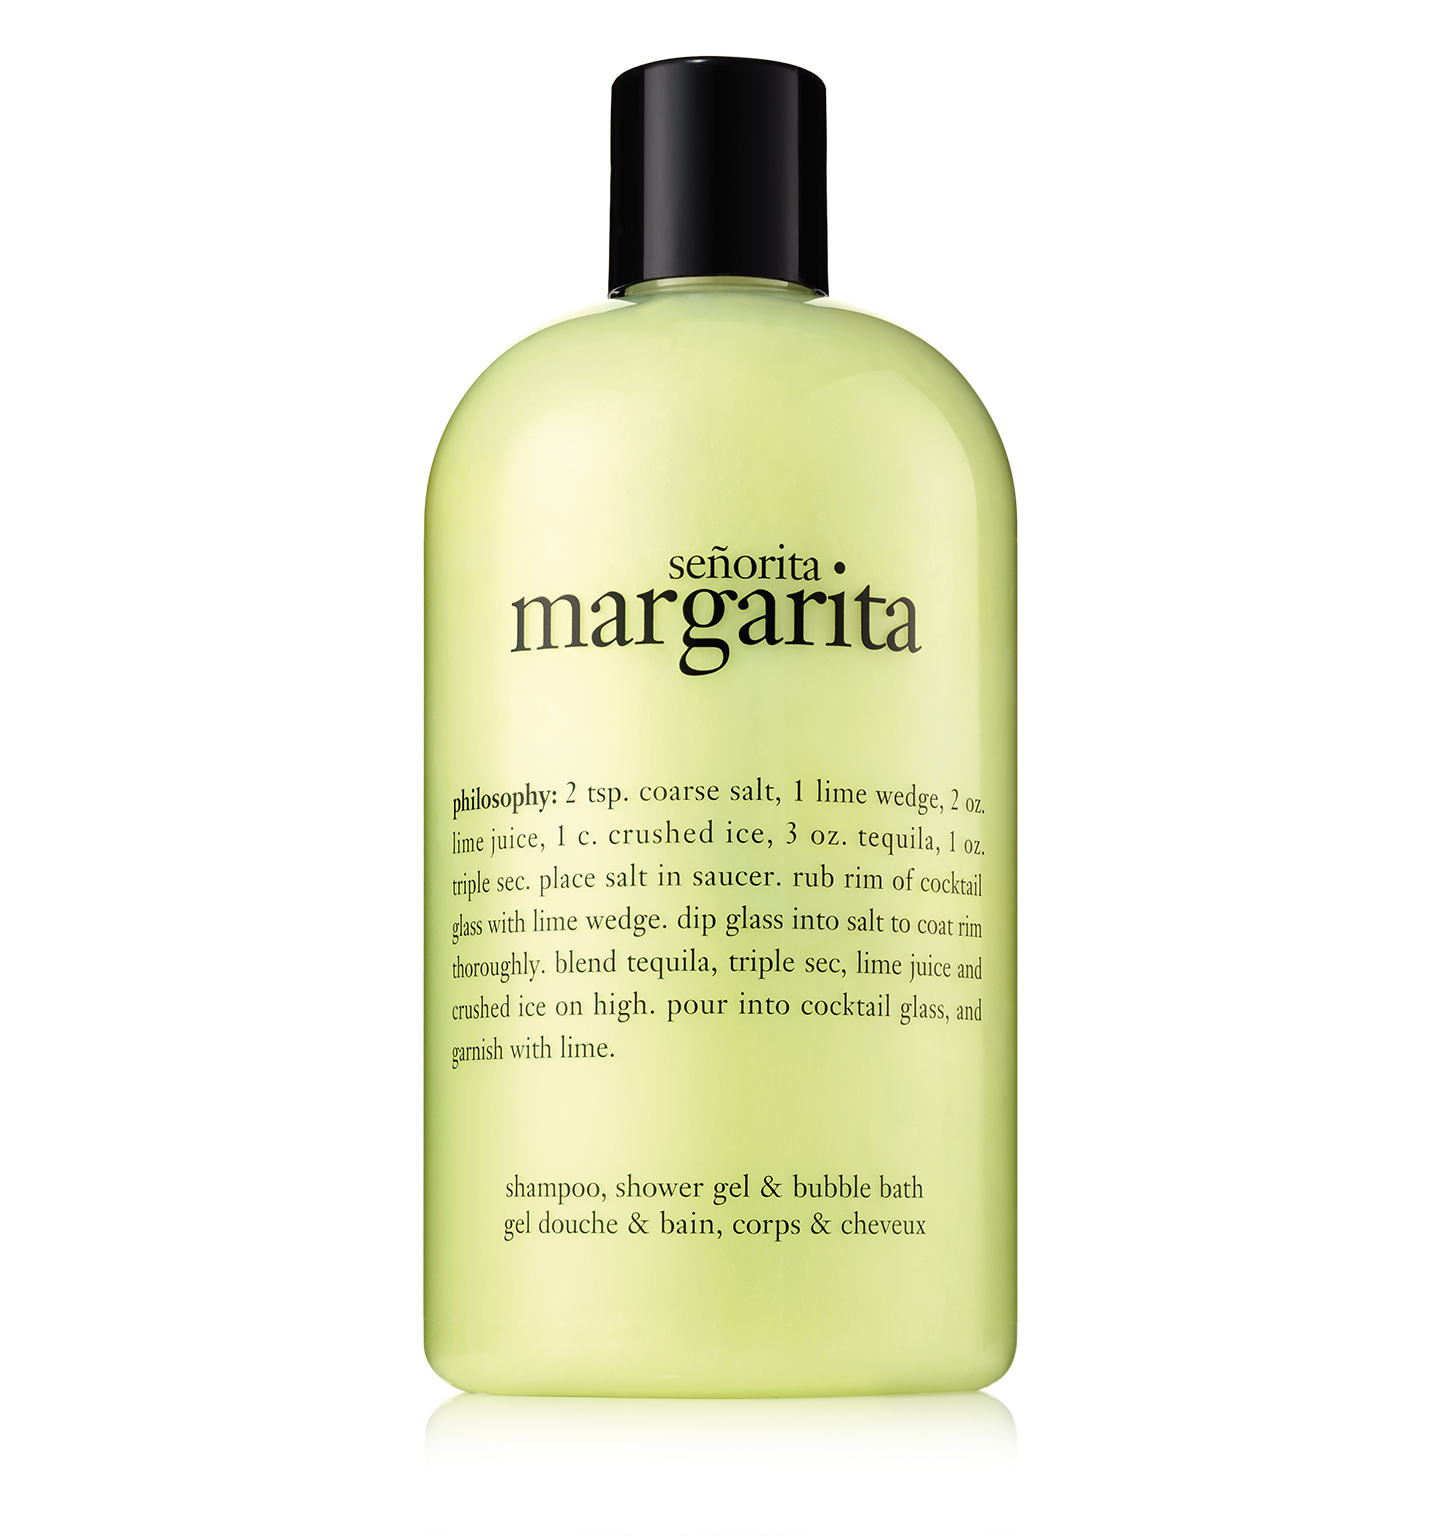 senorita margarita shampoo, shower gel & bubble bath